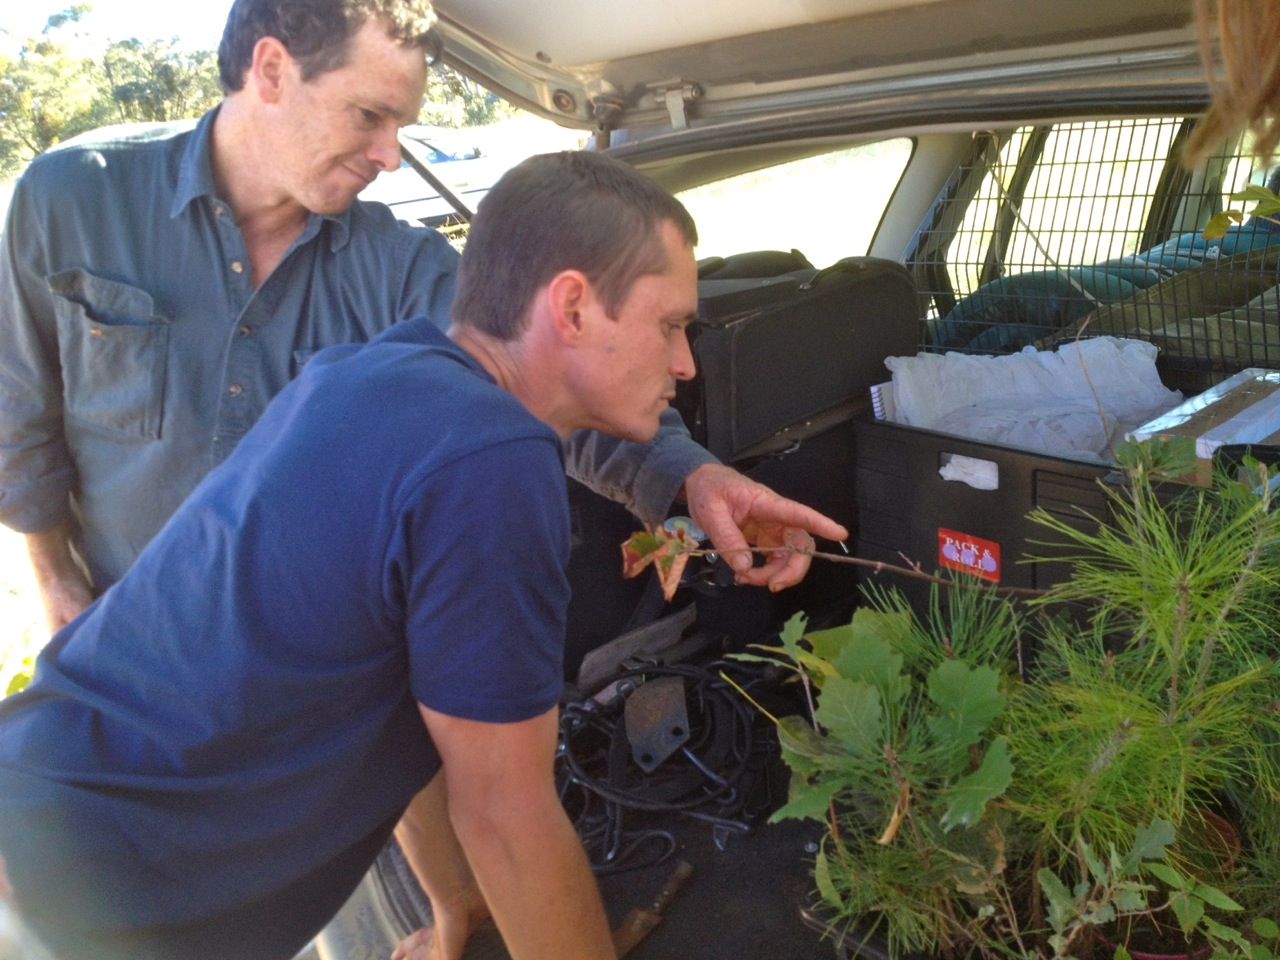 Paul (Speedy) shows Cam his latest generous batch of plant material that he's gifting to the Milkwood arboretum